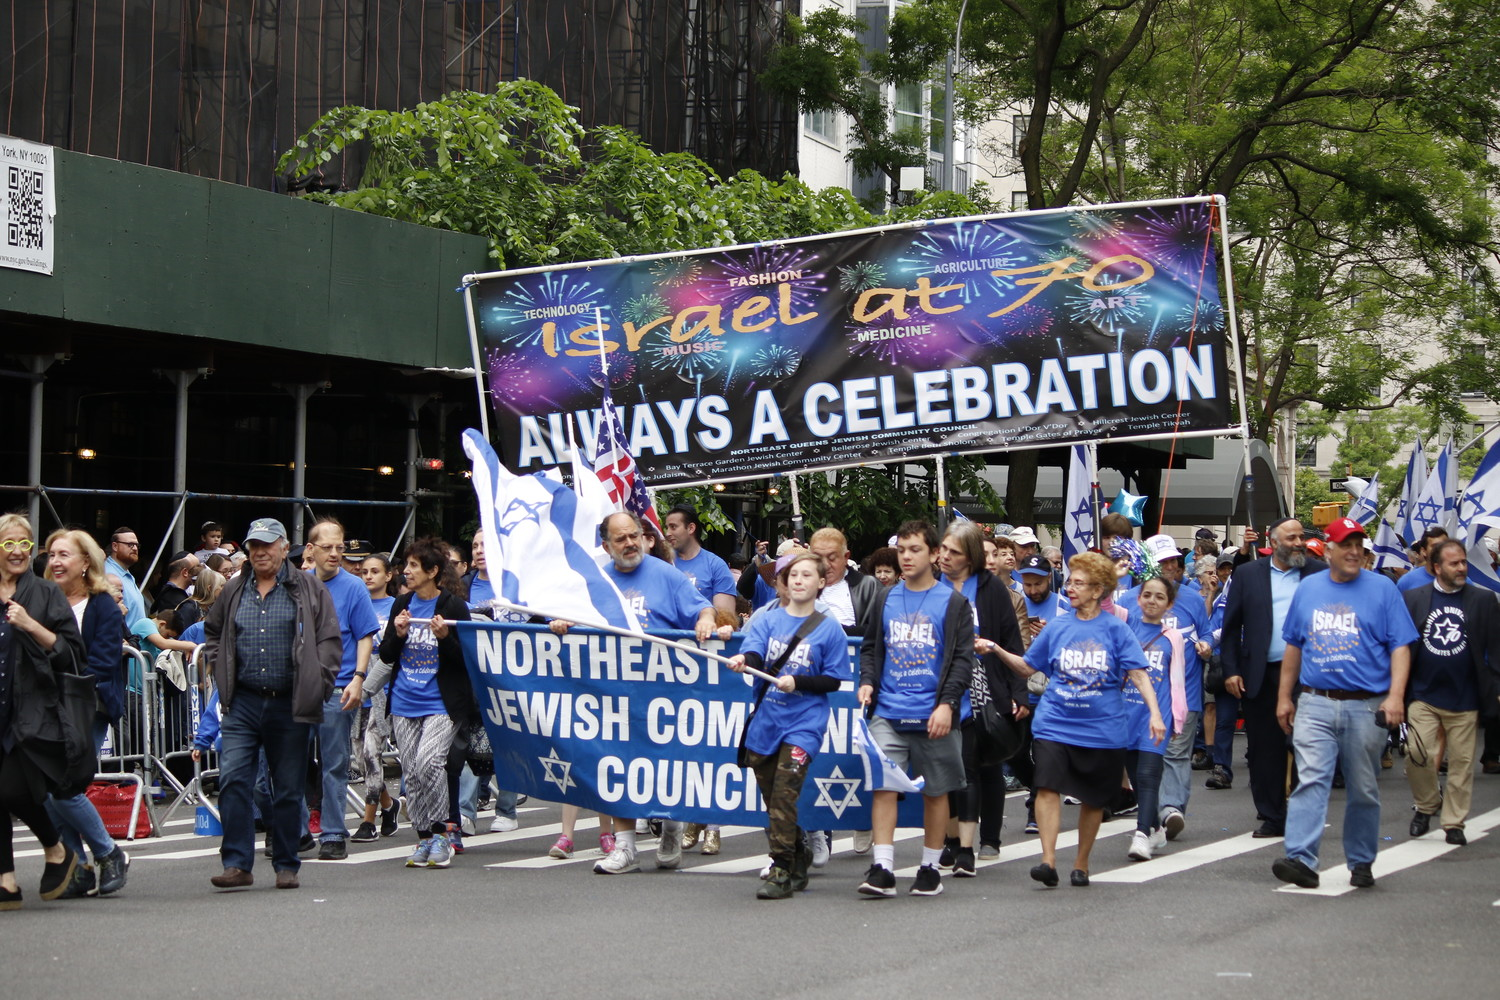 The Northeast Queens community was represented on Fifth Avenue.